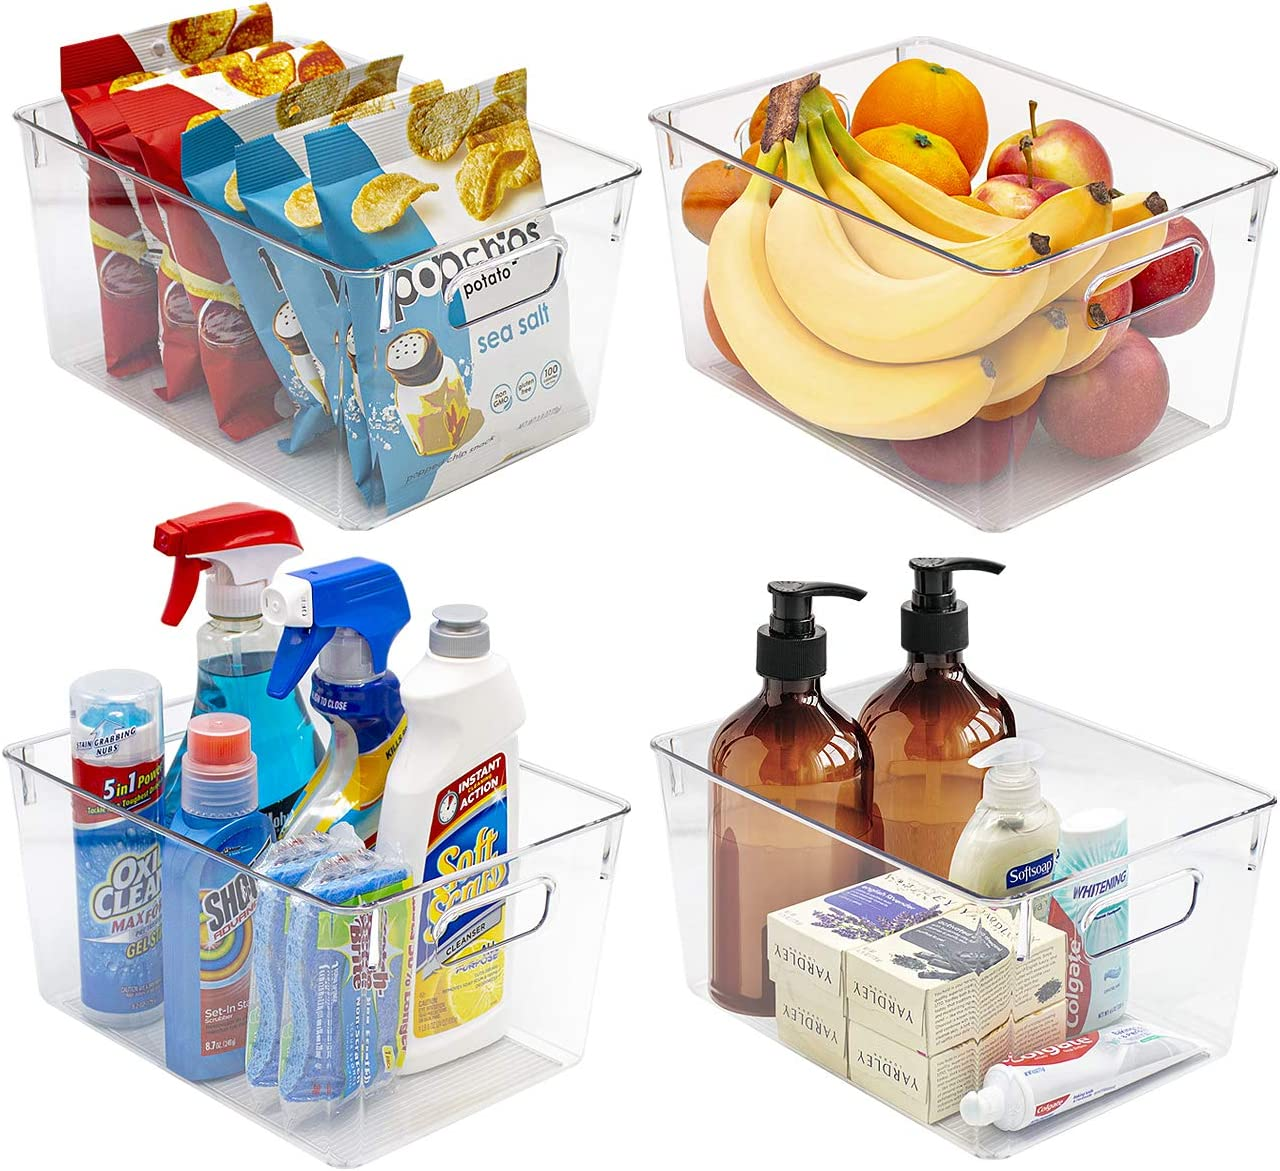 Sorbus Plastic Storage Bins Clear Pantry Organizer Box Bin Containers for Organizing Kitchen Fridge, Food, Snack Pantry Cabinet, Fruit, Vegetables, Bathroom Supplies (4-Pack)